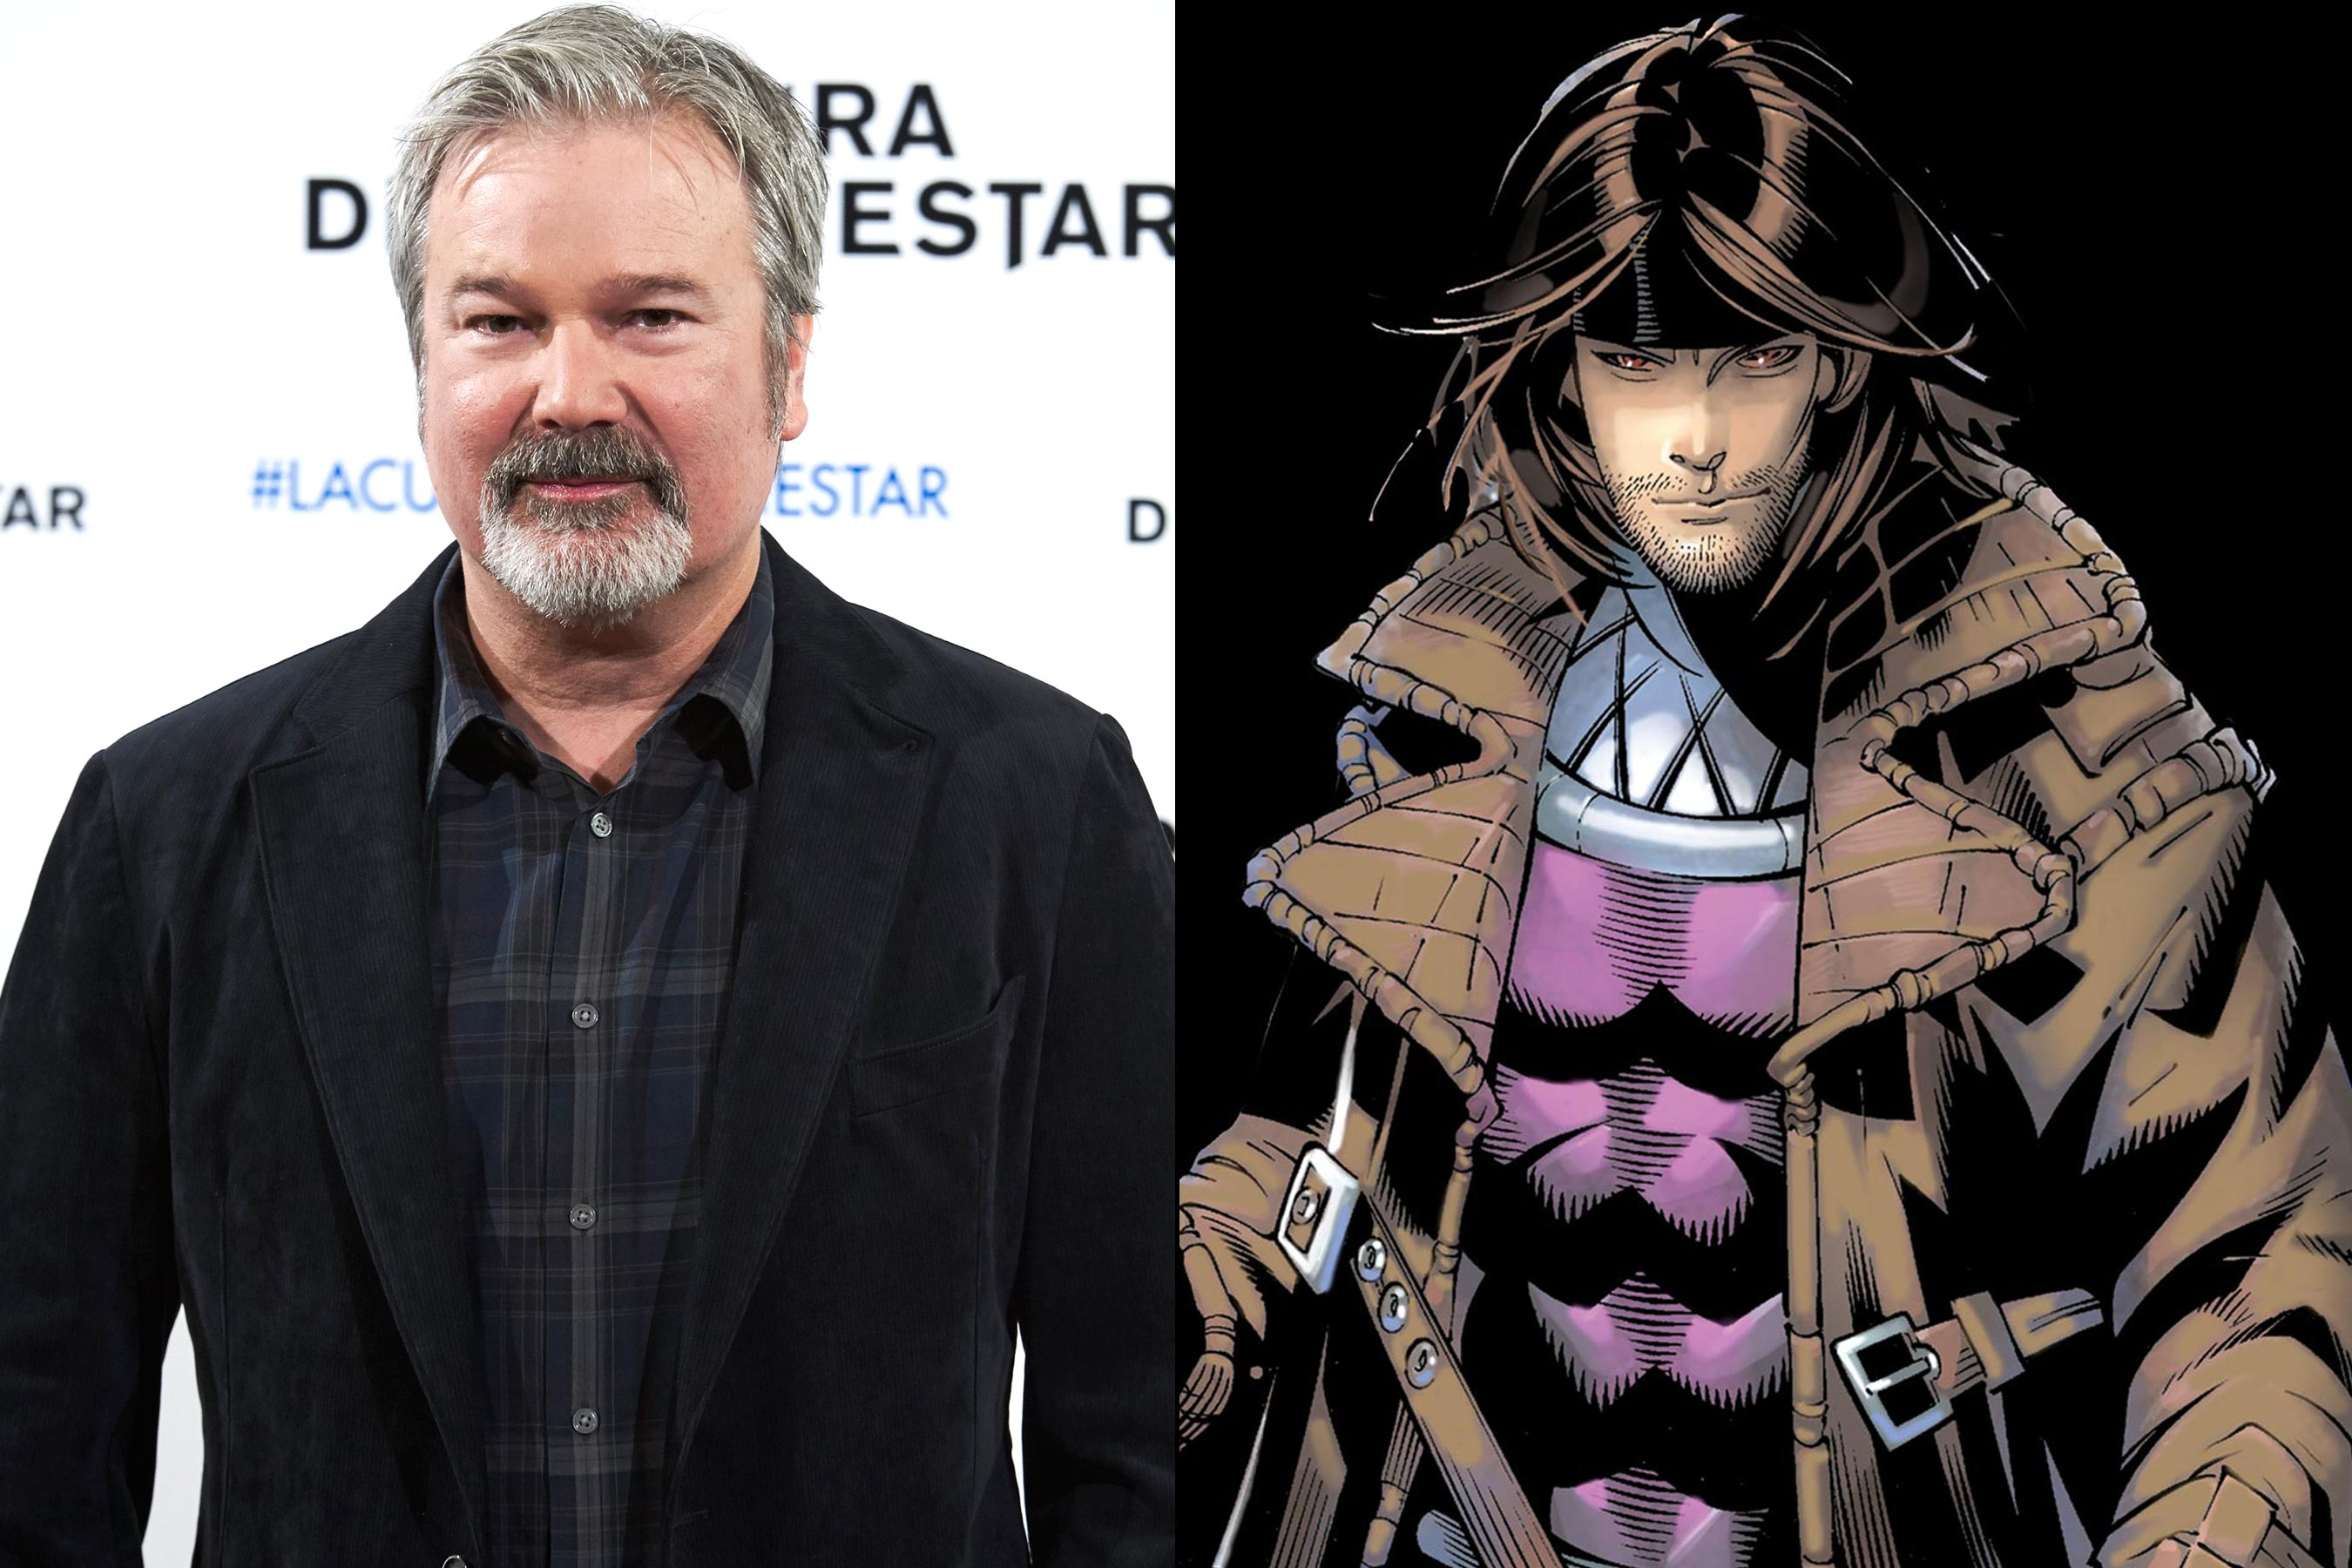 Gambit: Channing Tatum X-Men movie loses Gore Verbinski